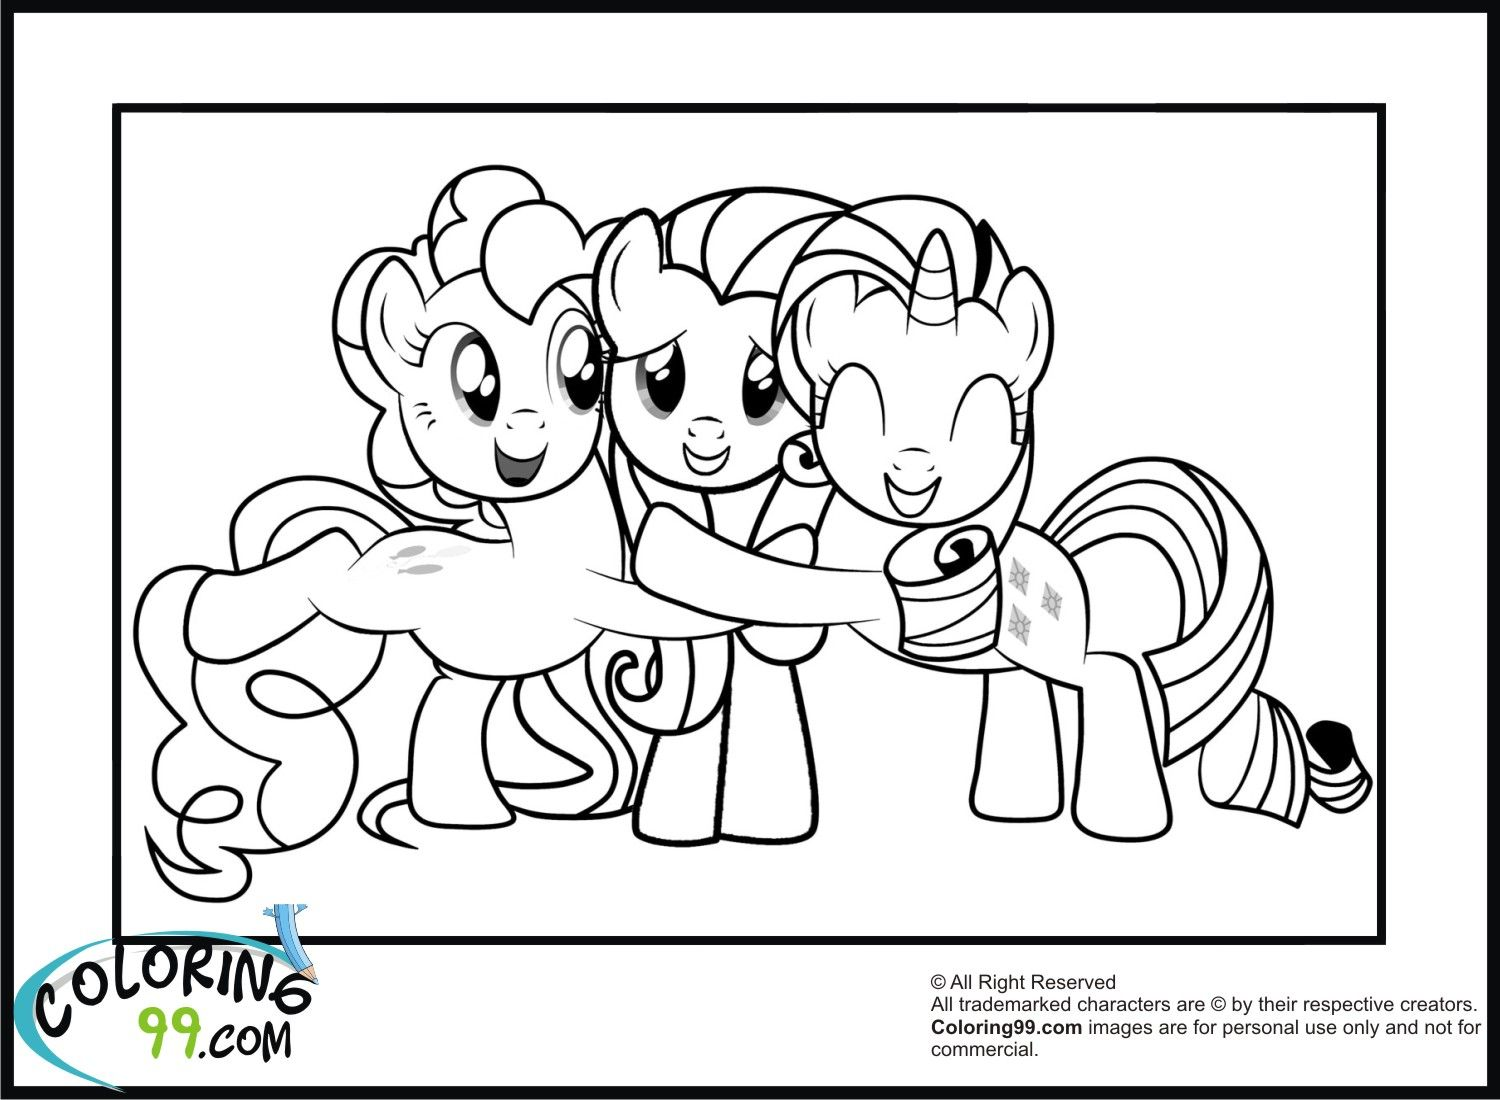 My little pony coloring pages rarity - Pinkie And Rarity Hugging Fluttershy See More Pinkie Pie Pony Smiling Big Coloring Page My Little